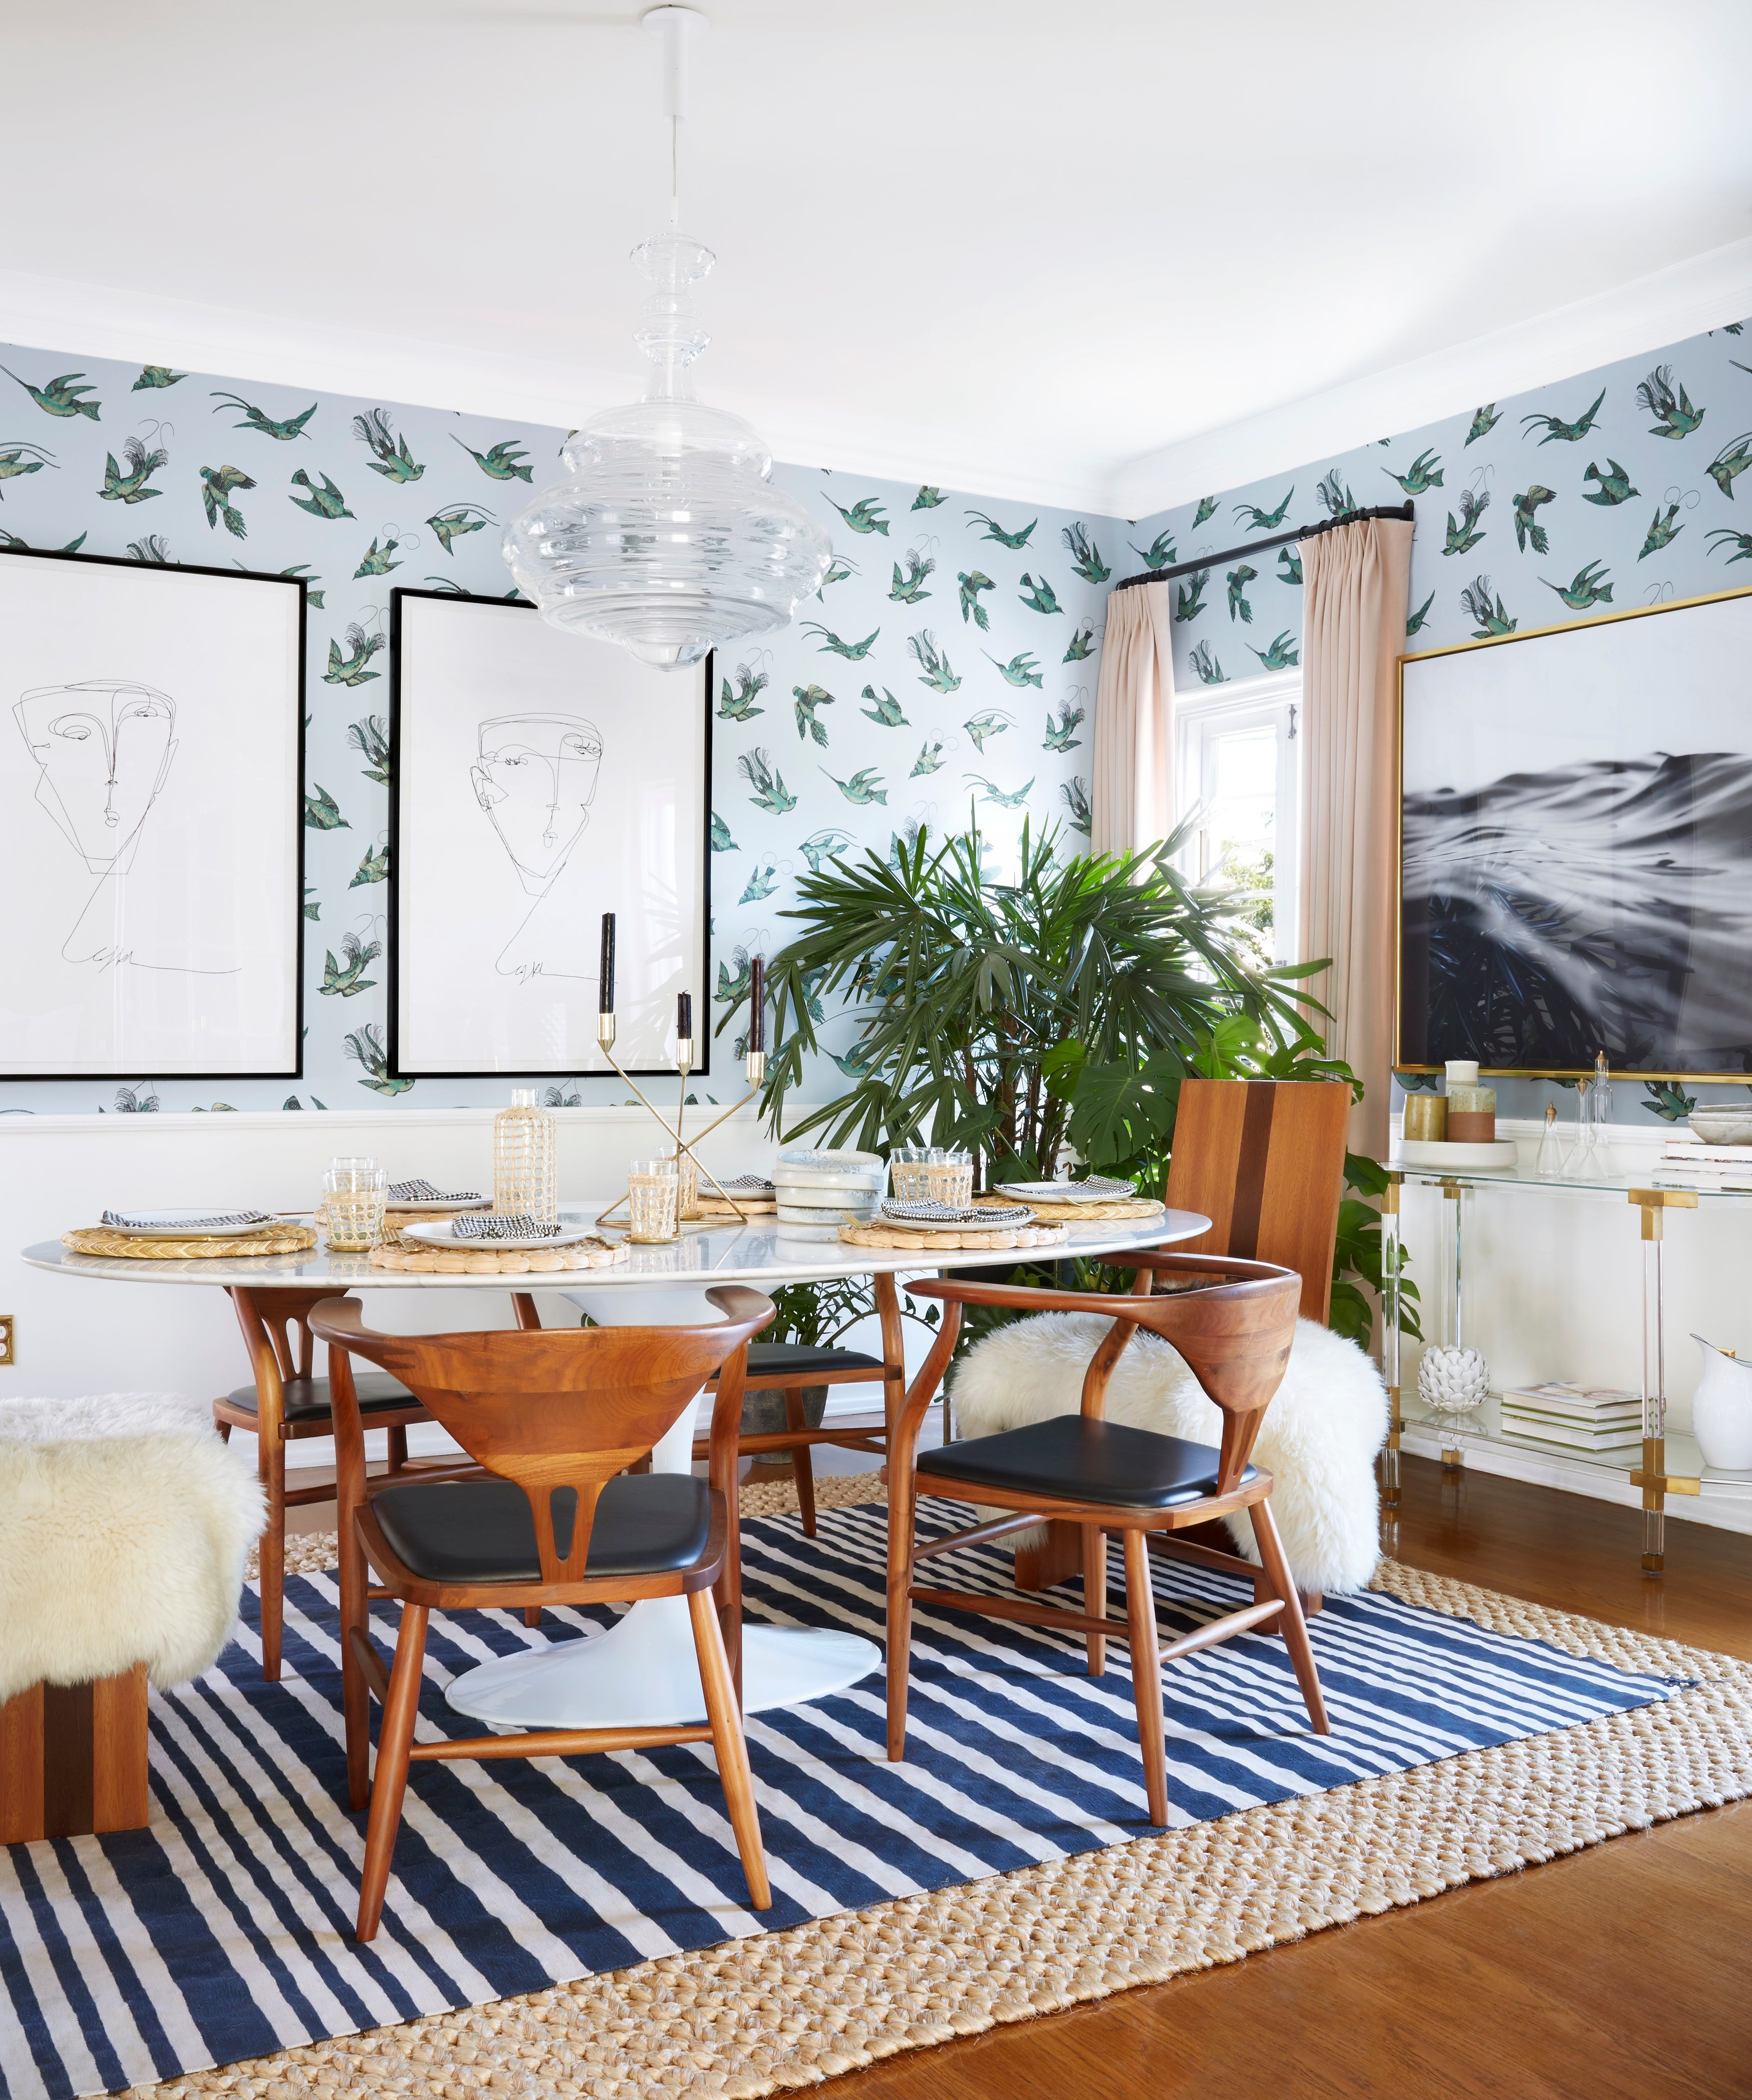 FEATURED_Dining_Room_2_004